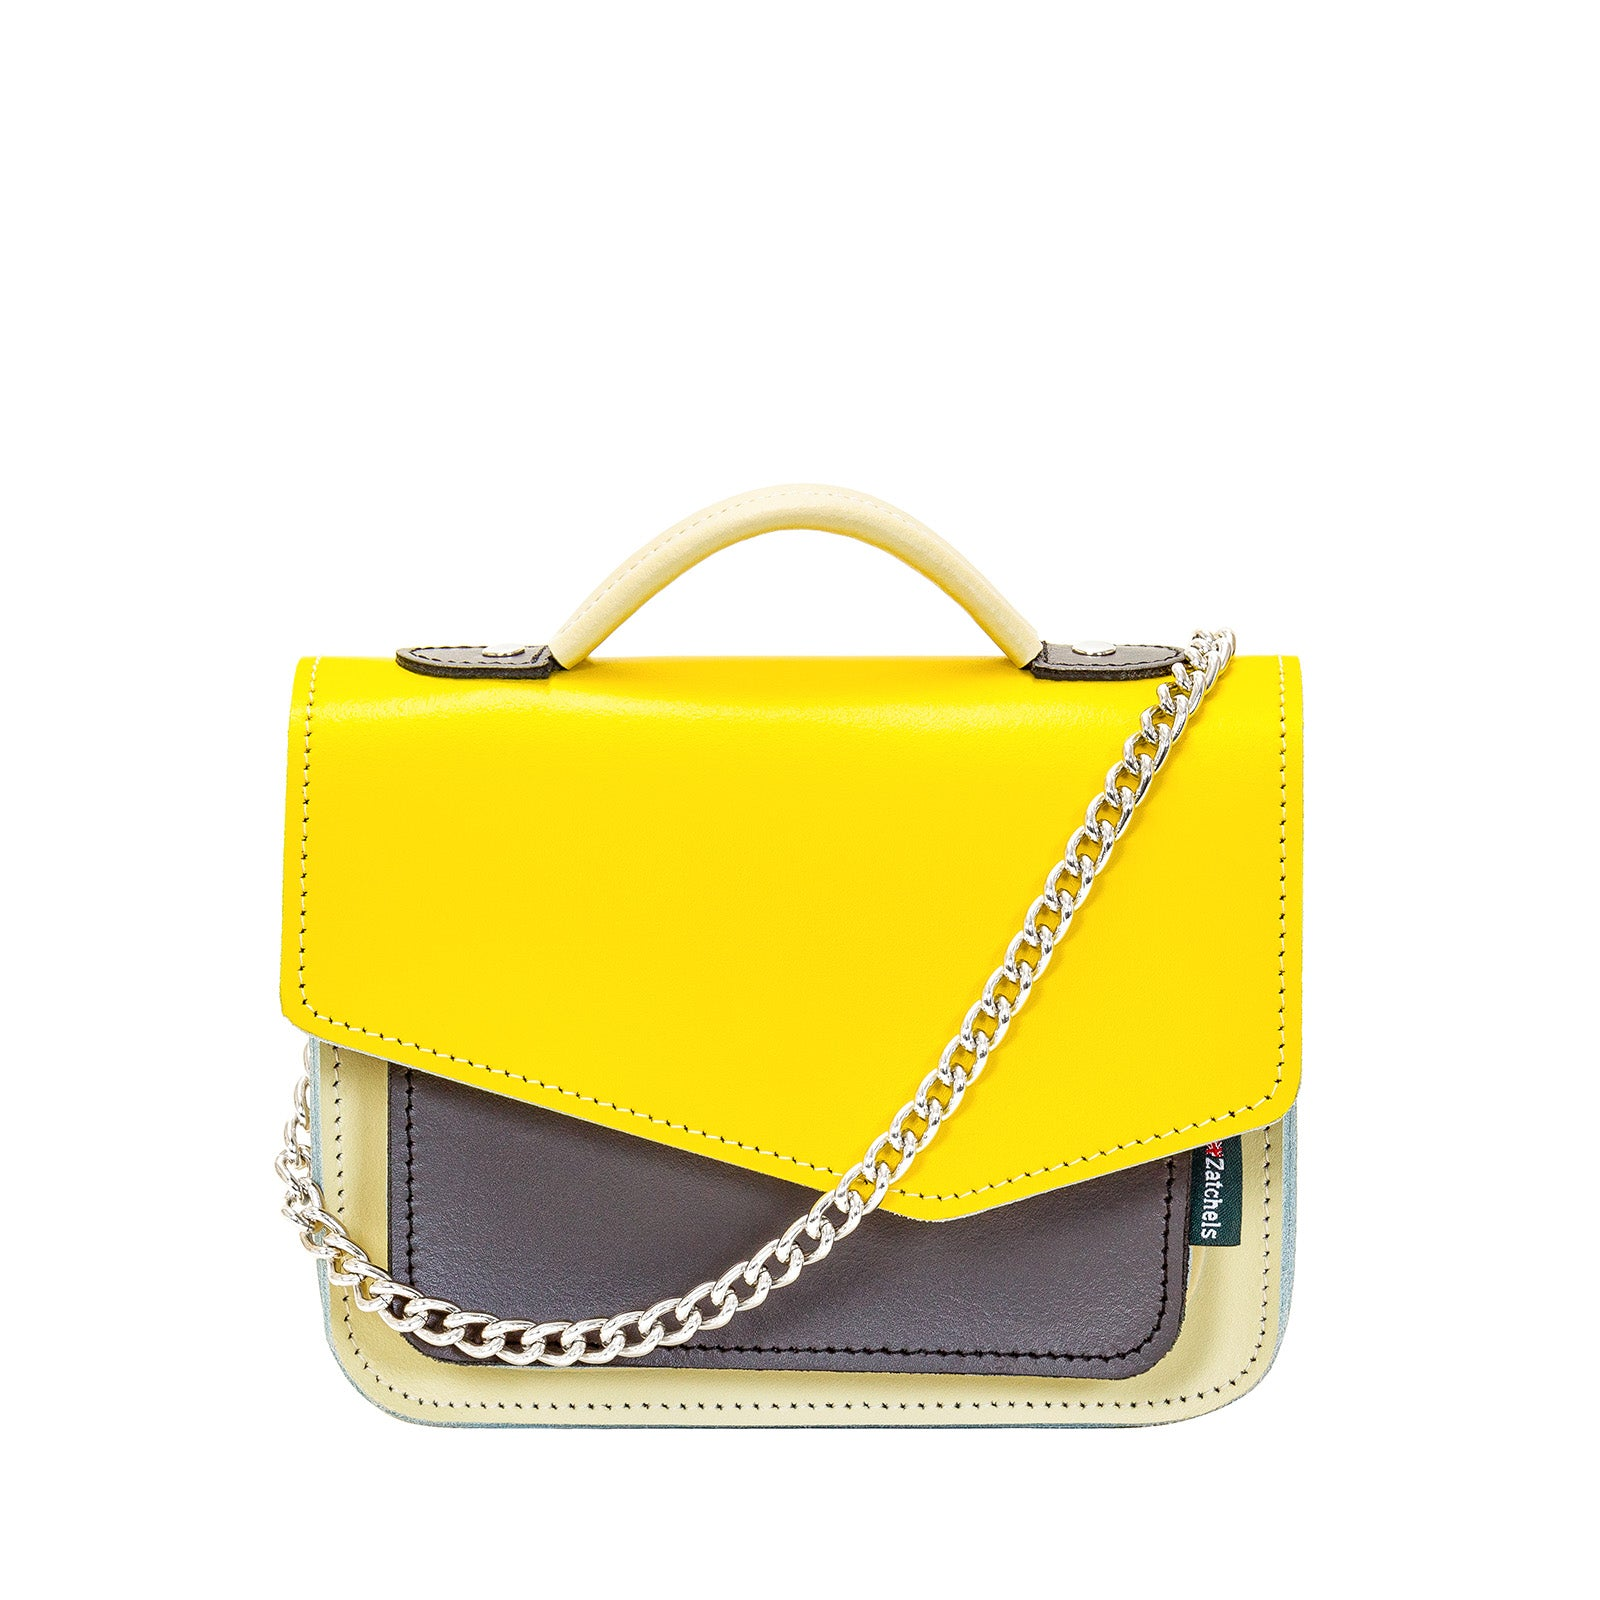 7077c361f34bb Yellow Leather Edge Mini Cross Body Bag | Zatchels